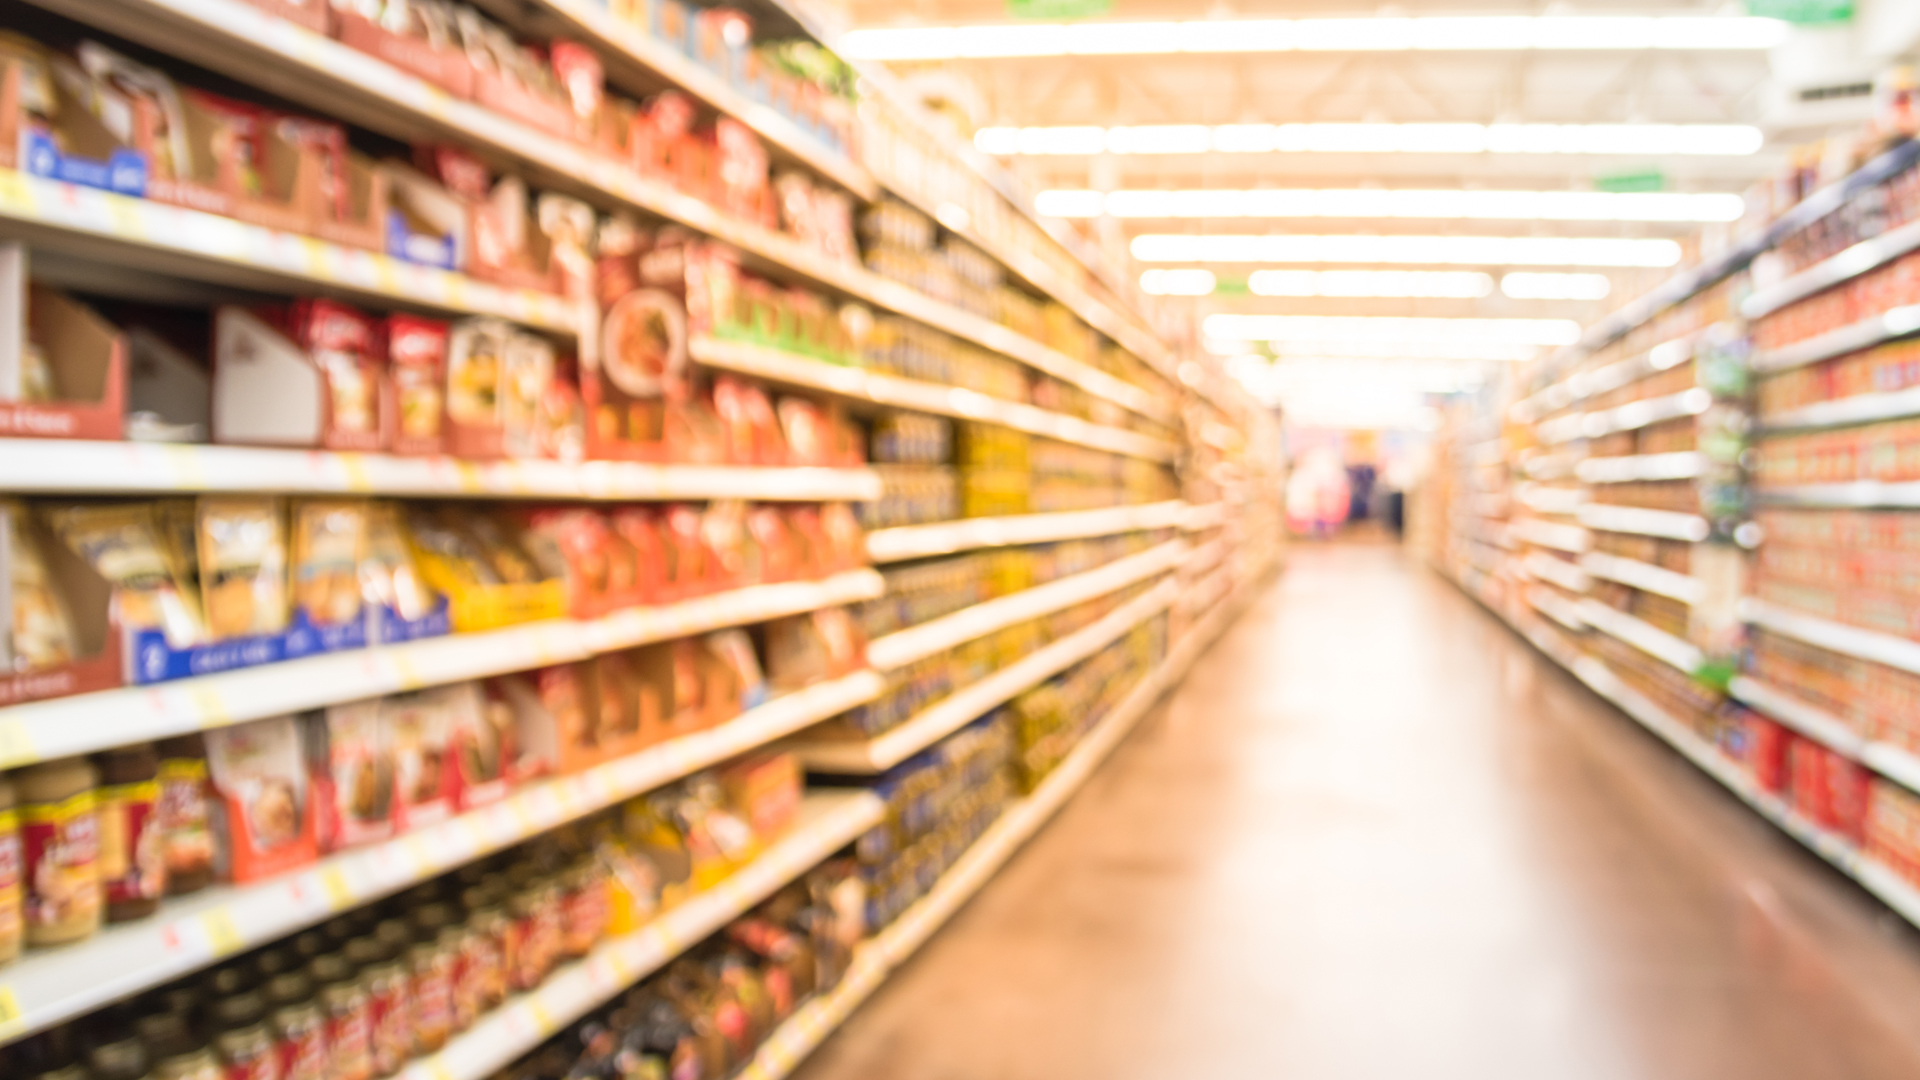 Canadian Packaged Food Labelling: Upcoming Proposed Changes Still Under Consultation